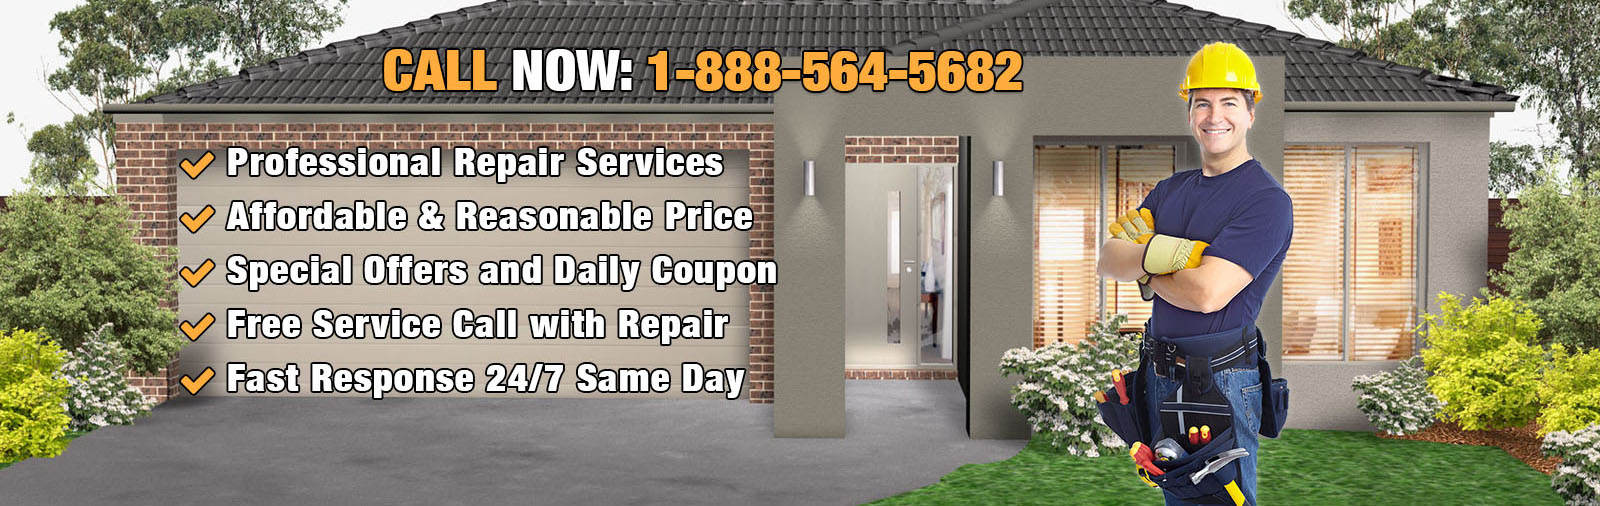 Able Doors And Repair Garage Door Repair Lone Tree 720 459 6162